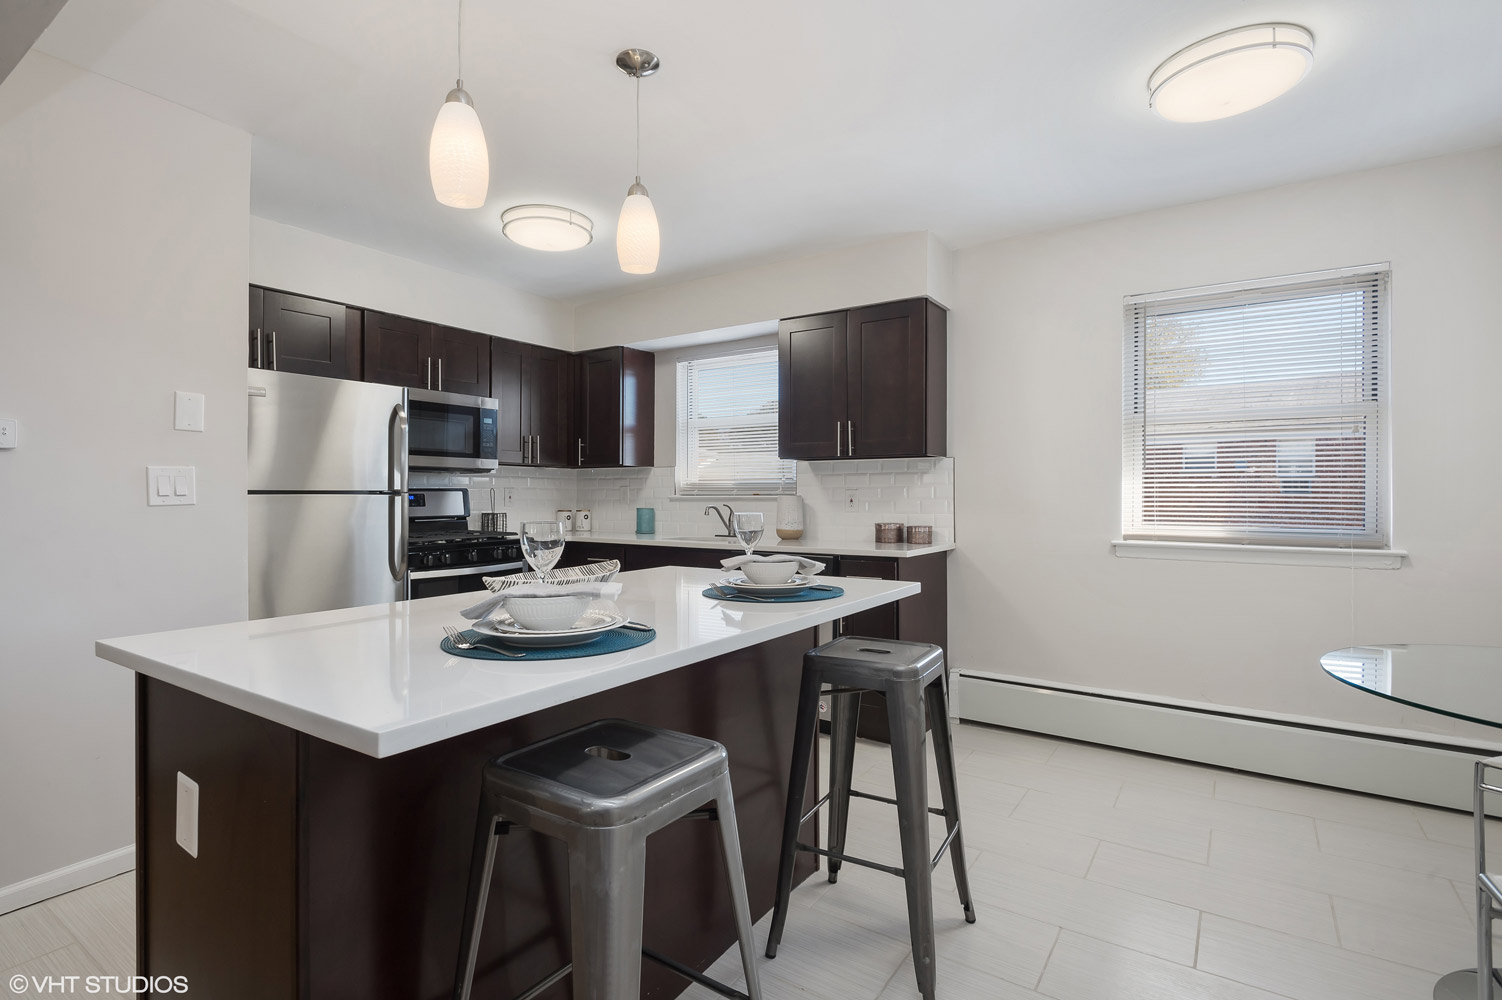 Built-in Microwave at Grandview Gardens Apartments in Edison, New Jersey